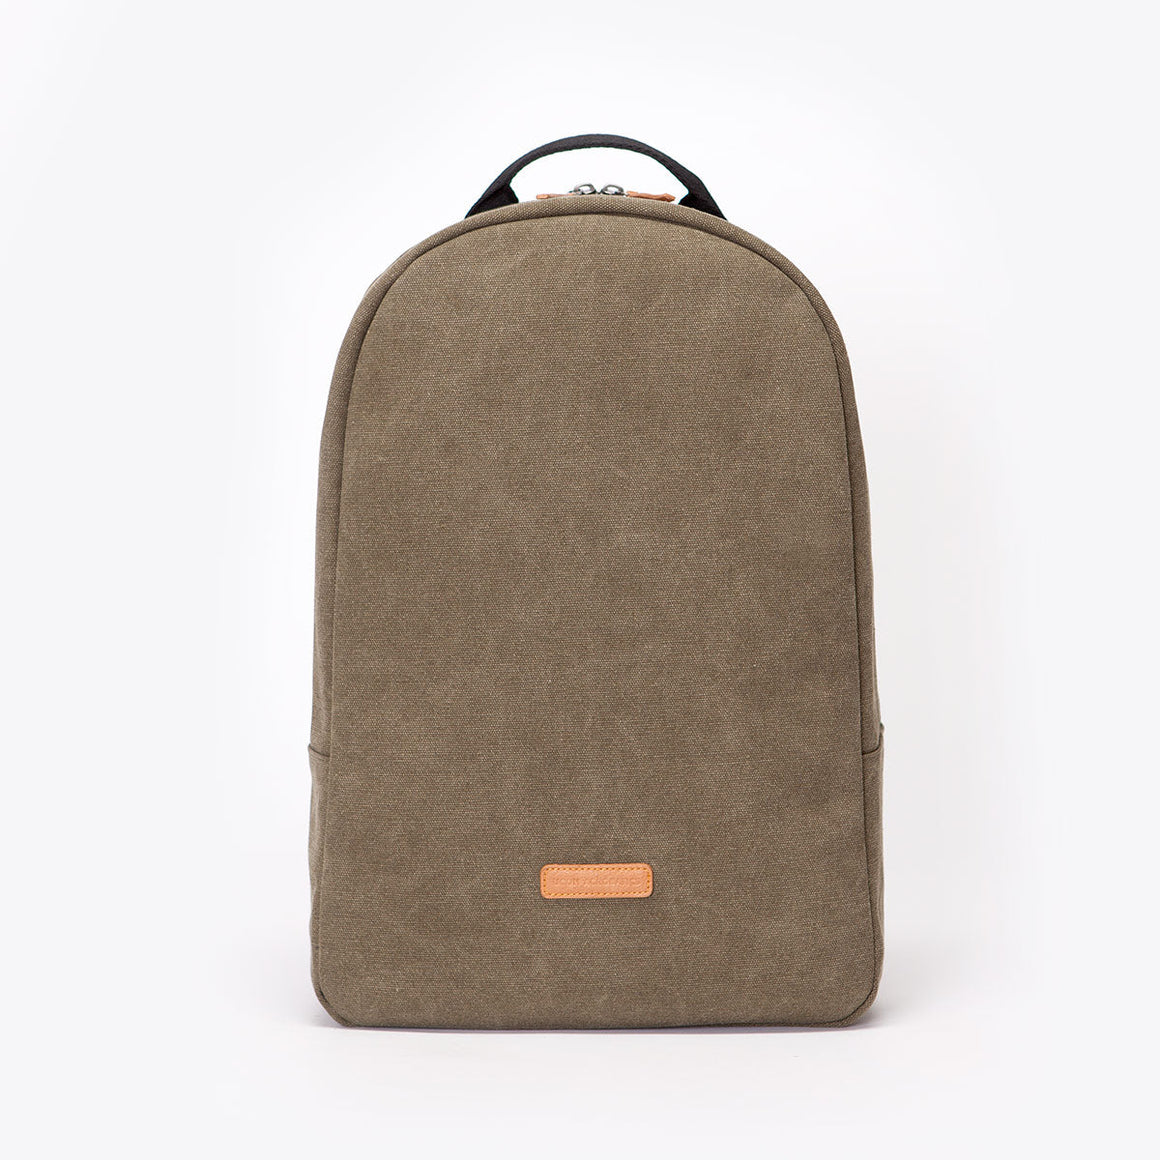 Ucon Acrobatics • Marvin Backpack • Seal Series (Olive)